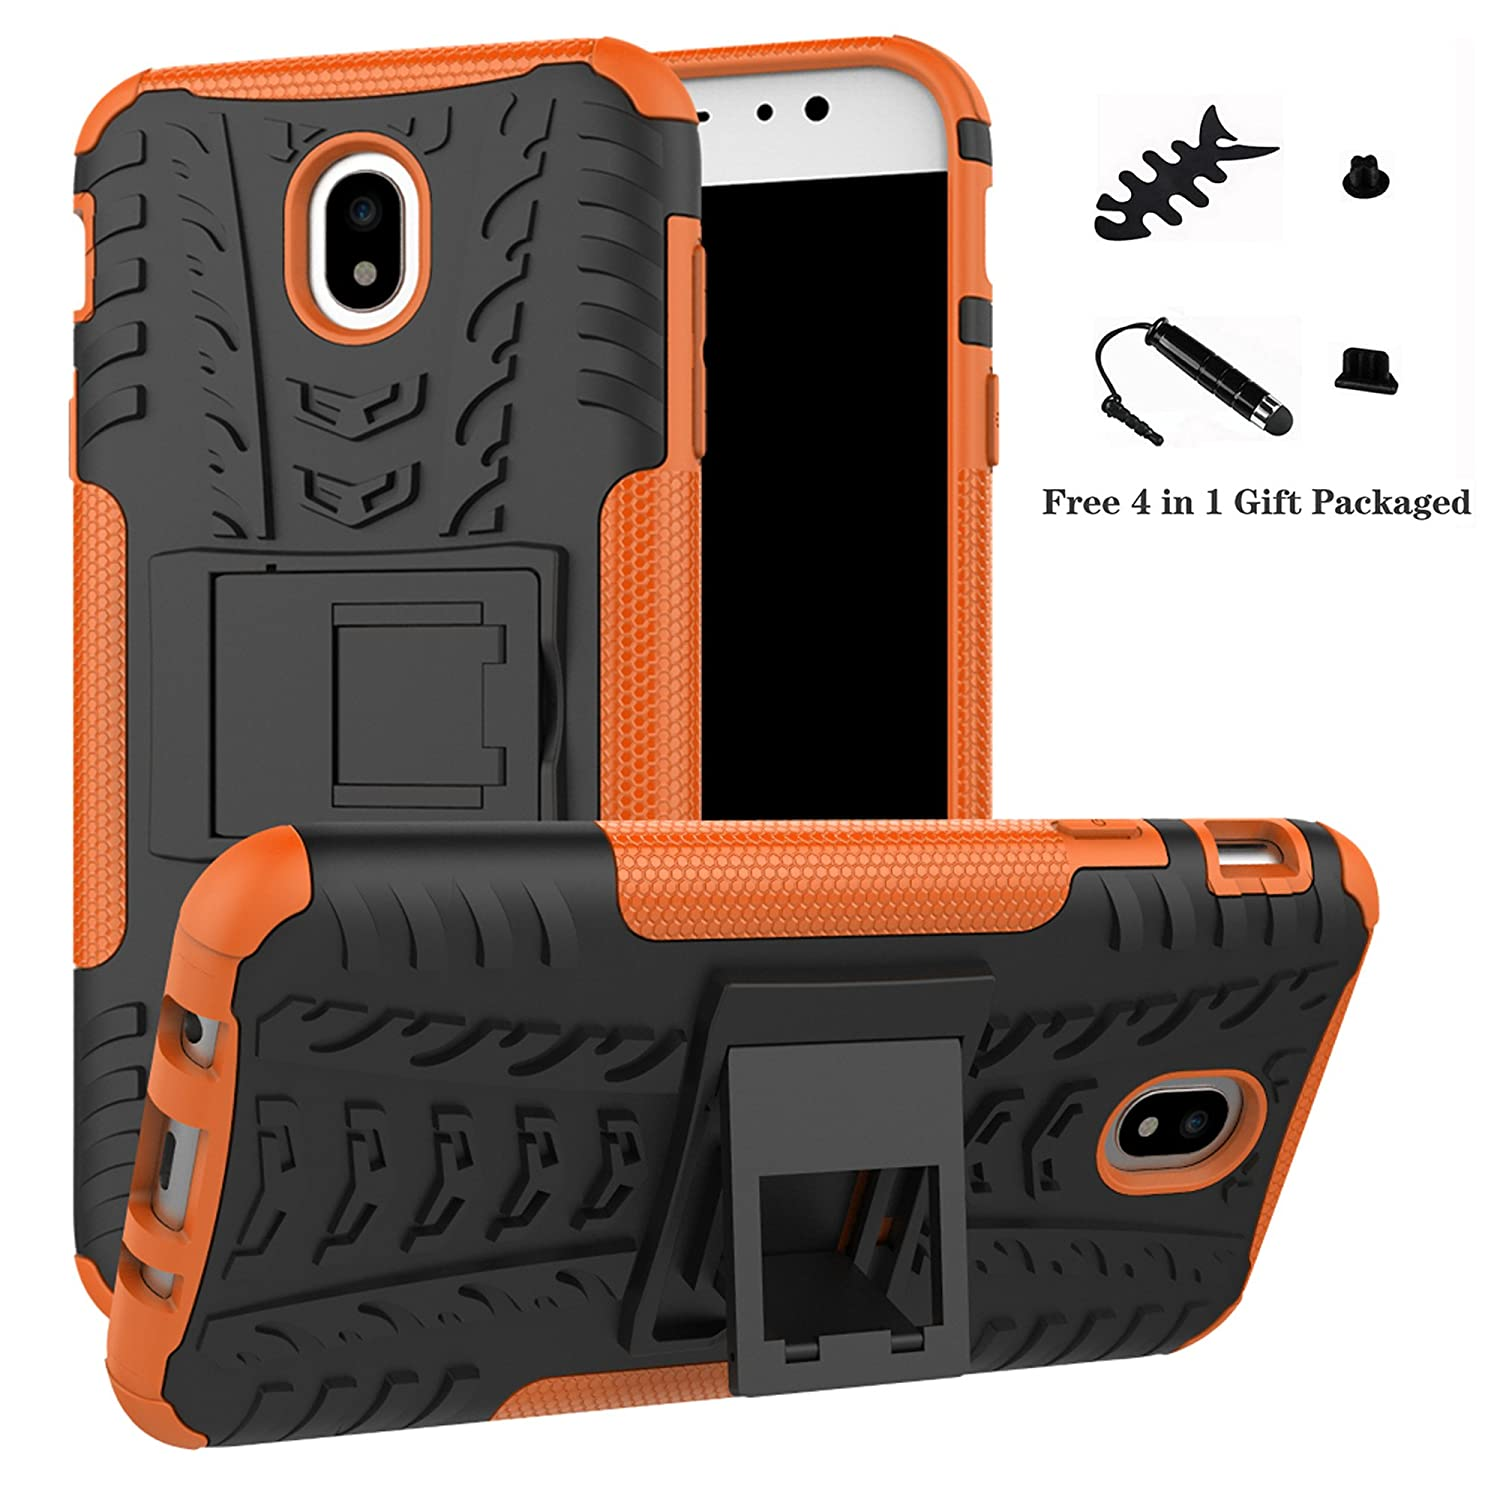 Galaxy J7 Pro 2017 case,LiuShan Shockproof Heavy Duty Combo Hybrid Rugged Dual Layer Grip Cover with Kickstand For Samsung Galaxy J7 Pro J730G 2017 ...